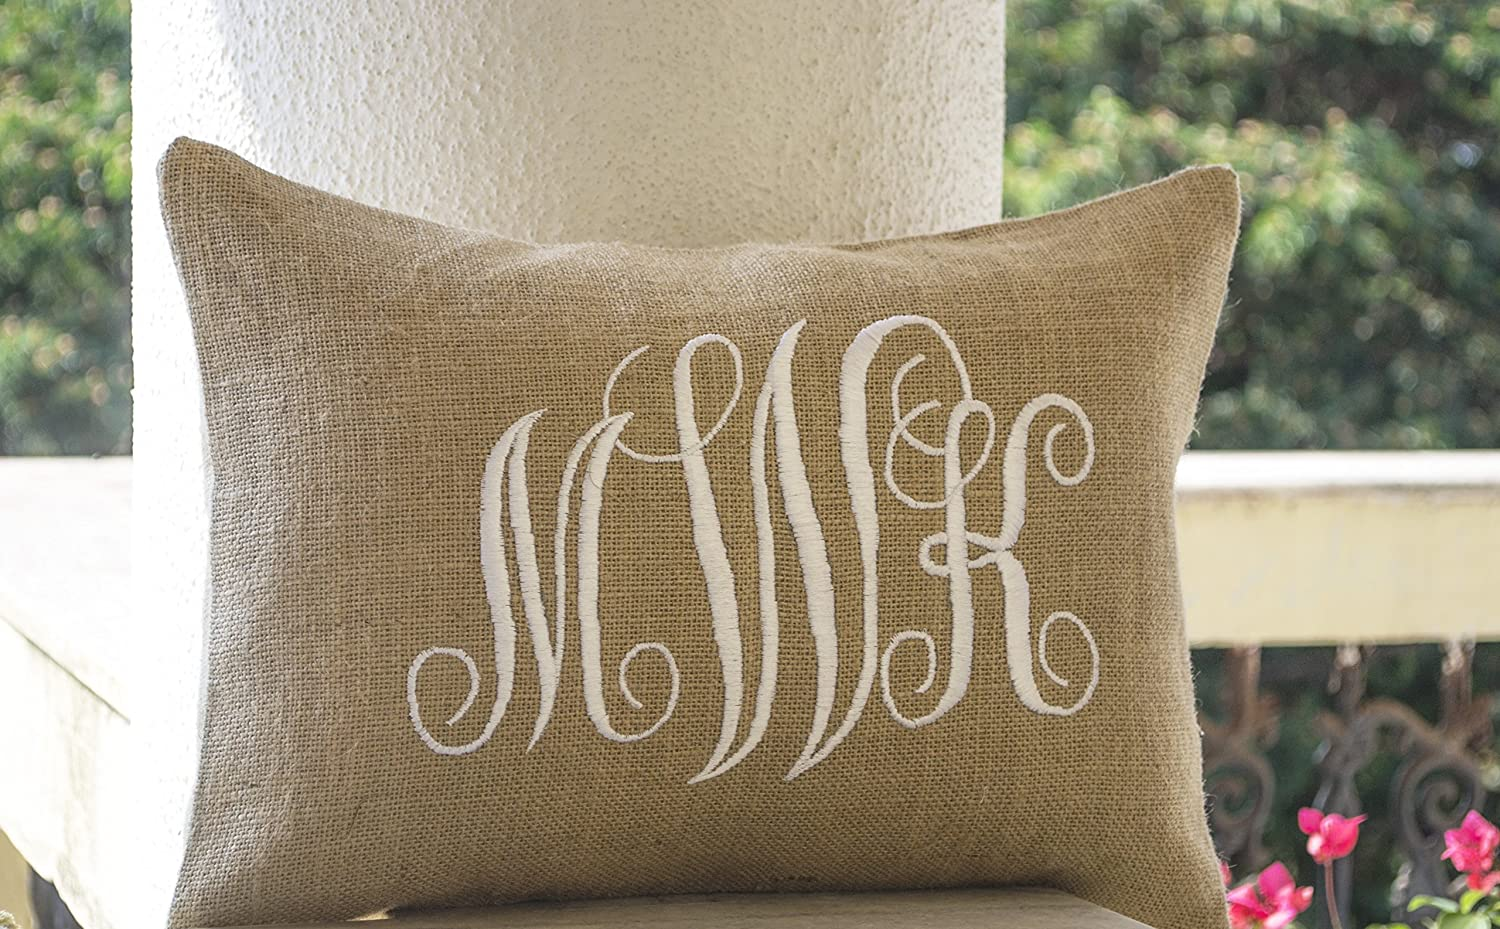 monogram handcrafted beaute burlap com amazon three pillow dp customizable letters custom cursive covers lumbar amore pillows